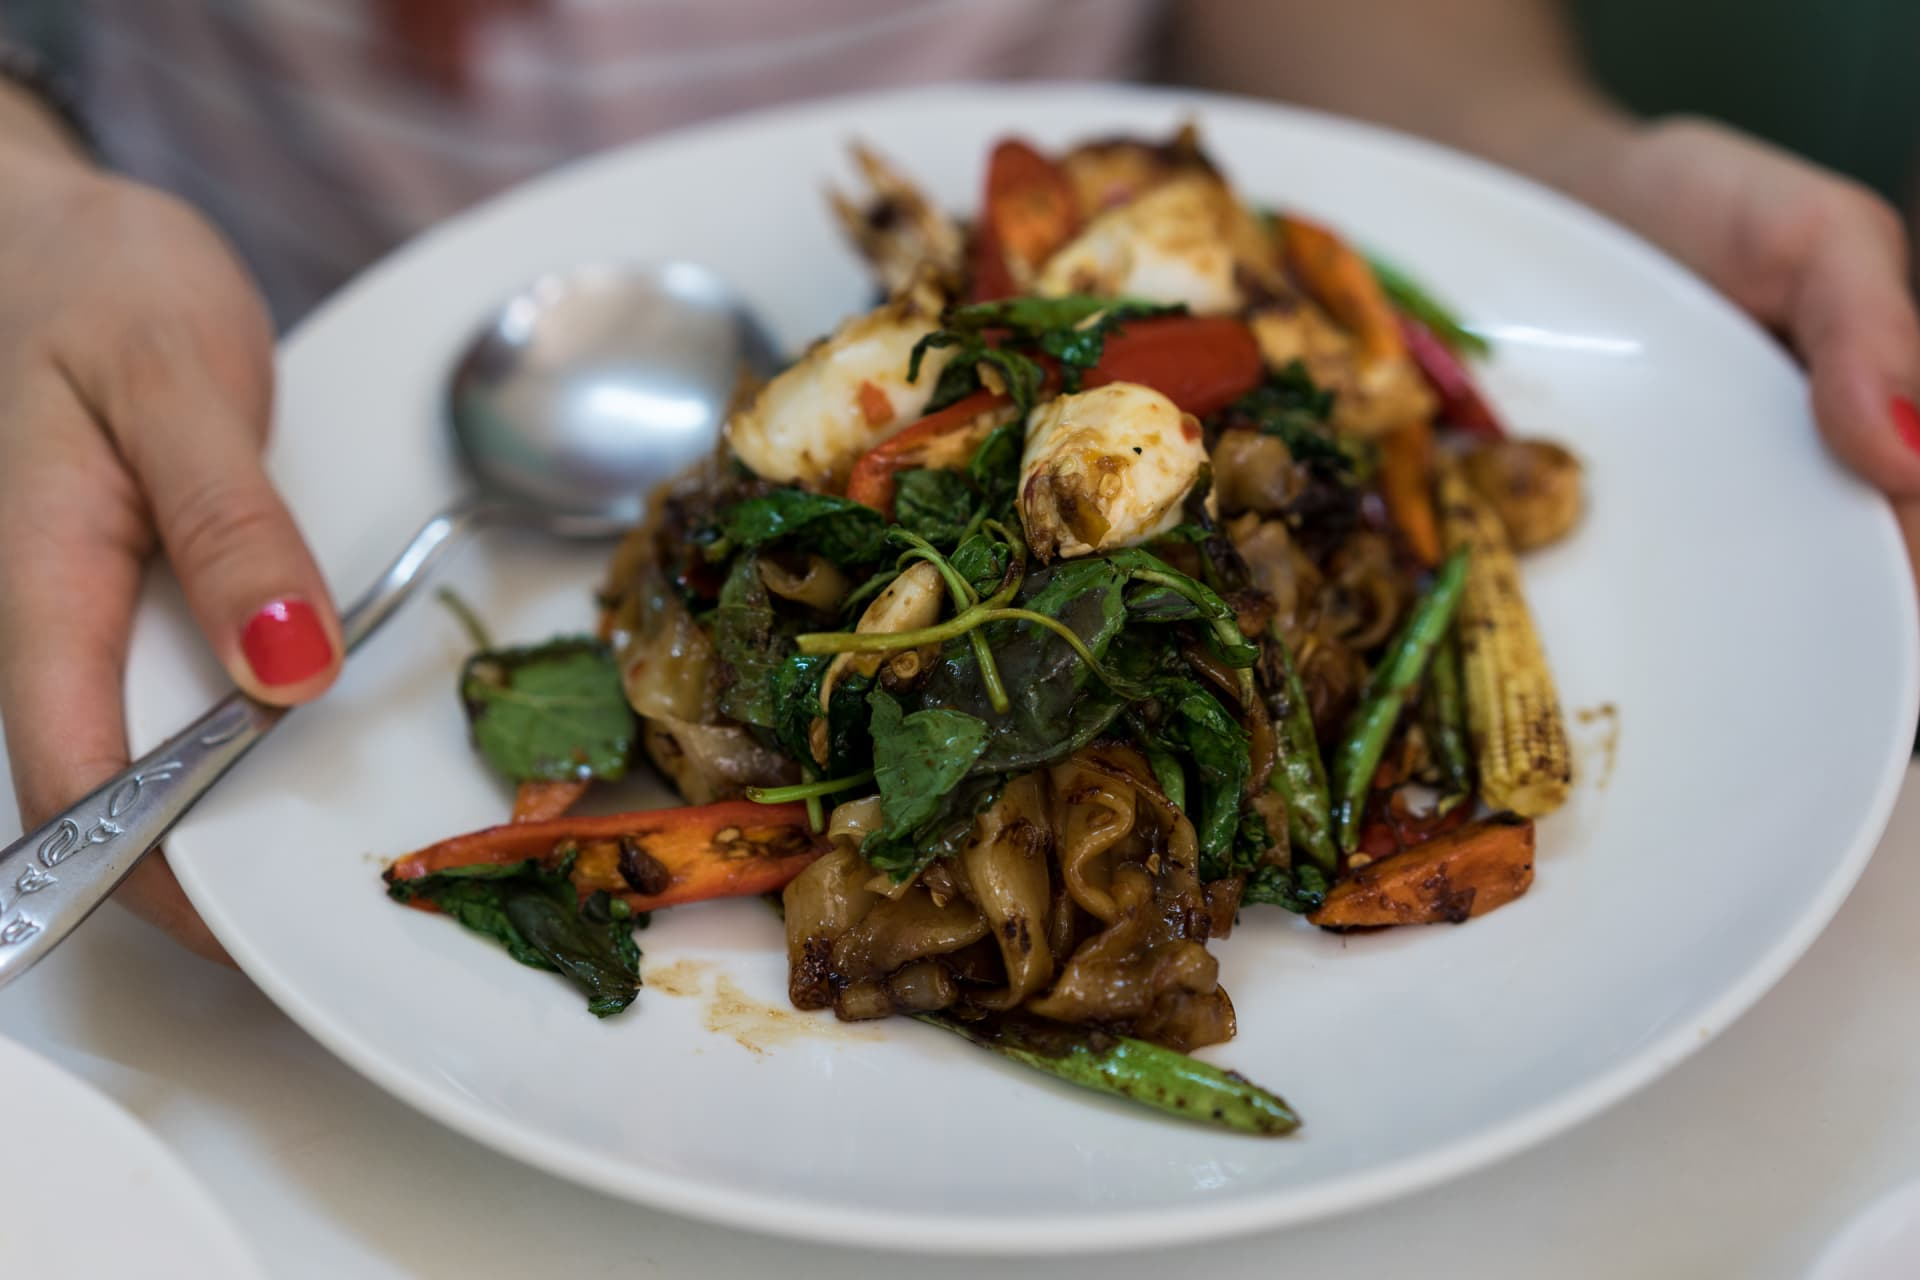 Drunken noodles – a signature by street food queen Jay Fai